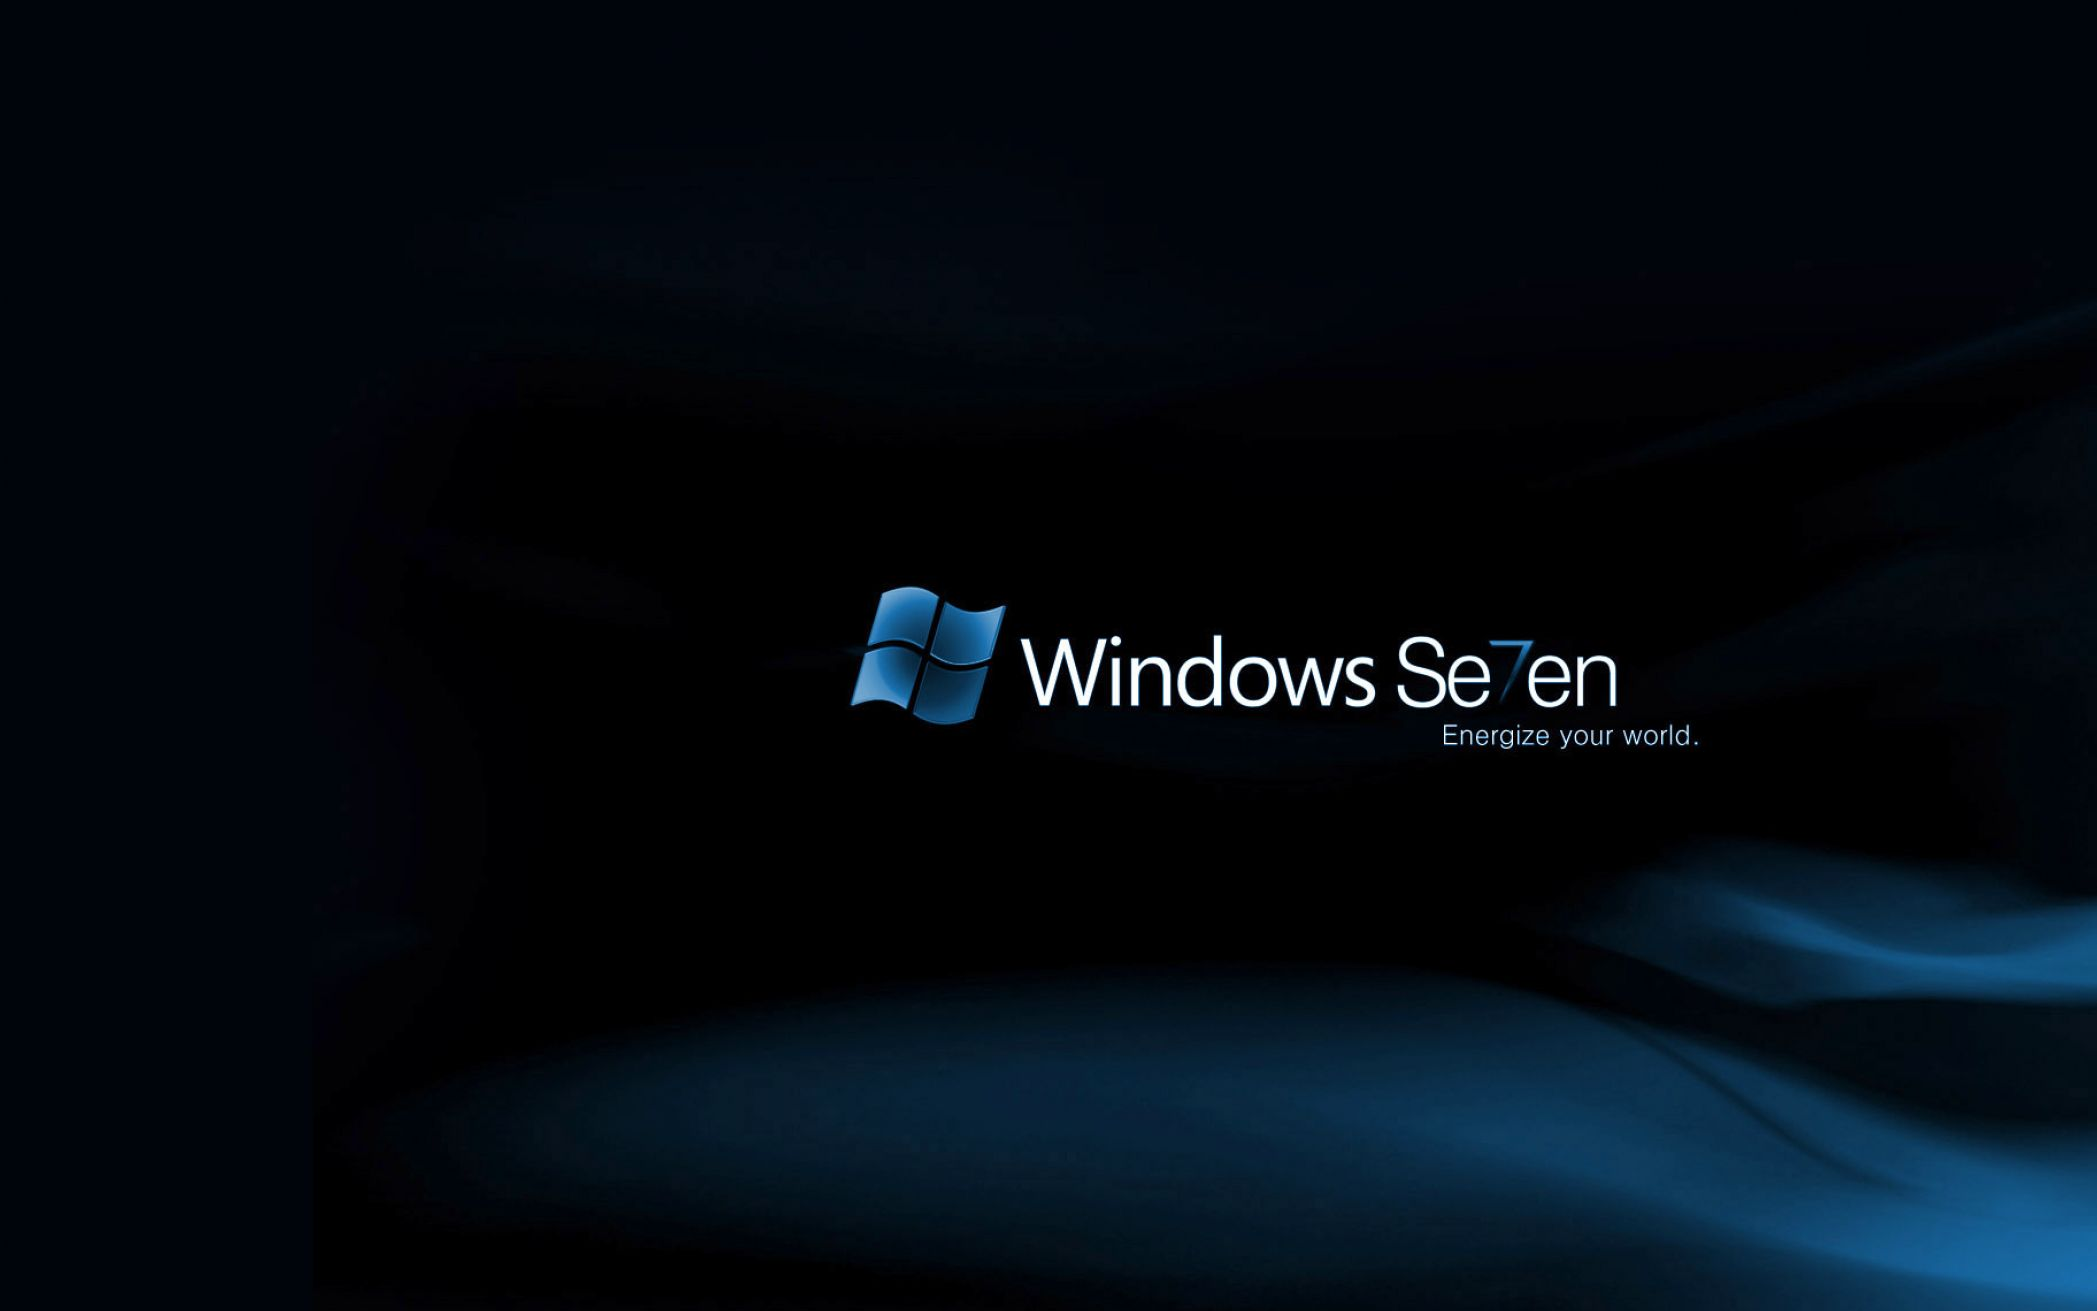 Windows 7 ultimate desktop wallpaper for Window 7 ultimate